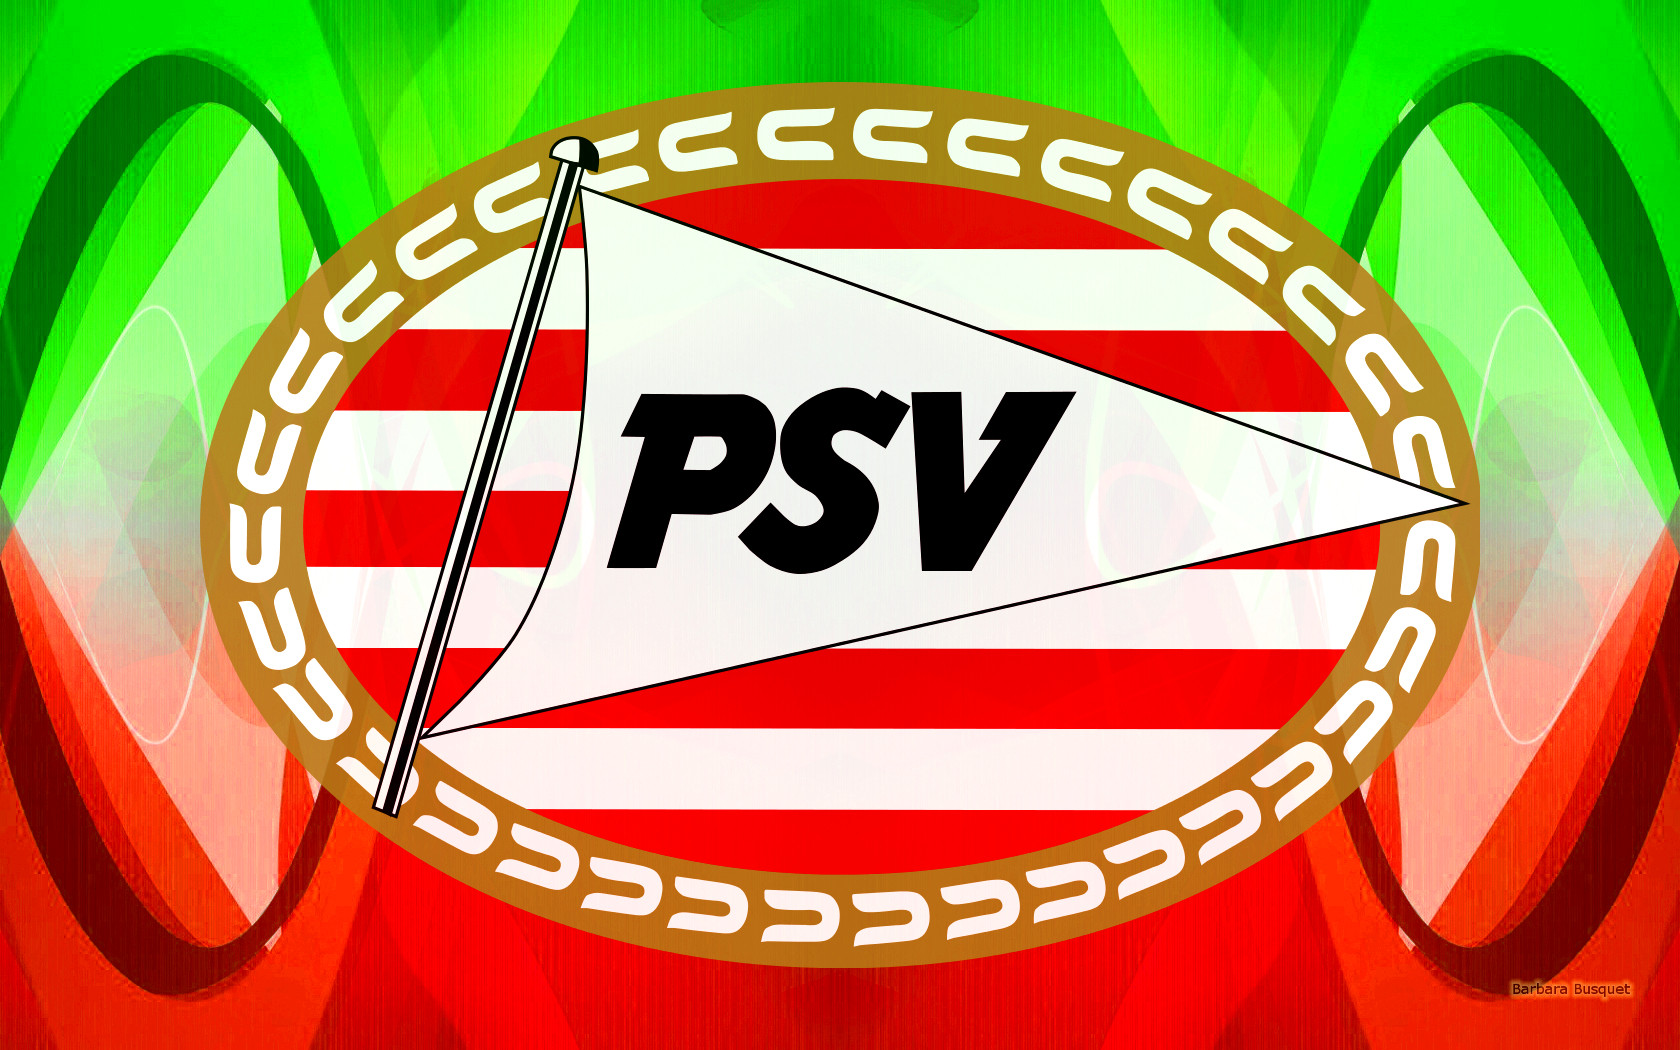 PSV Eindhoven logo wallpapers - Barbaras HD Wallpapers